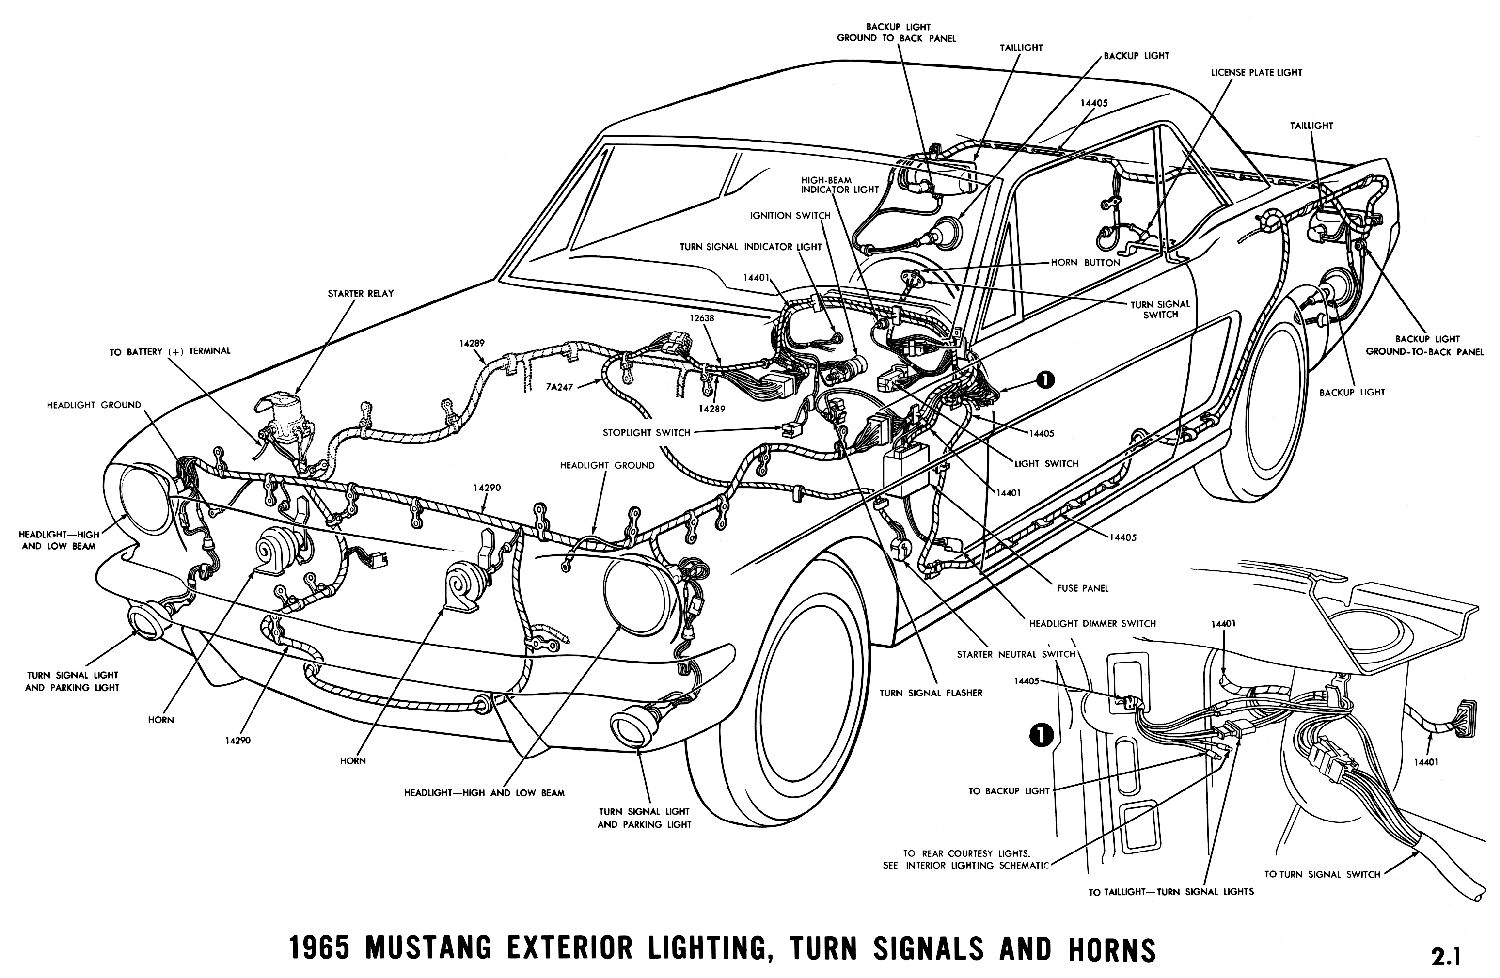 1965 mustang wiring diagrams - average joe restoration, Wiring diagram